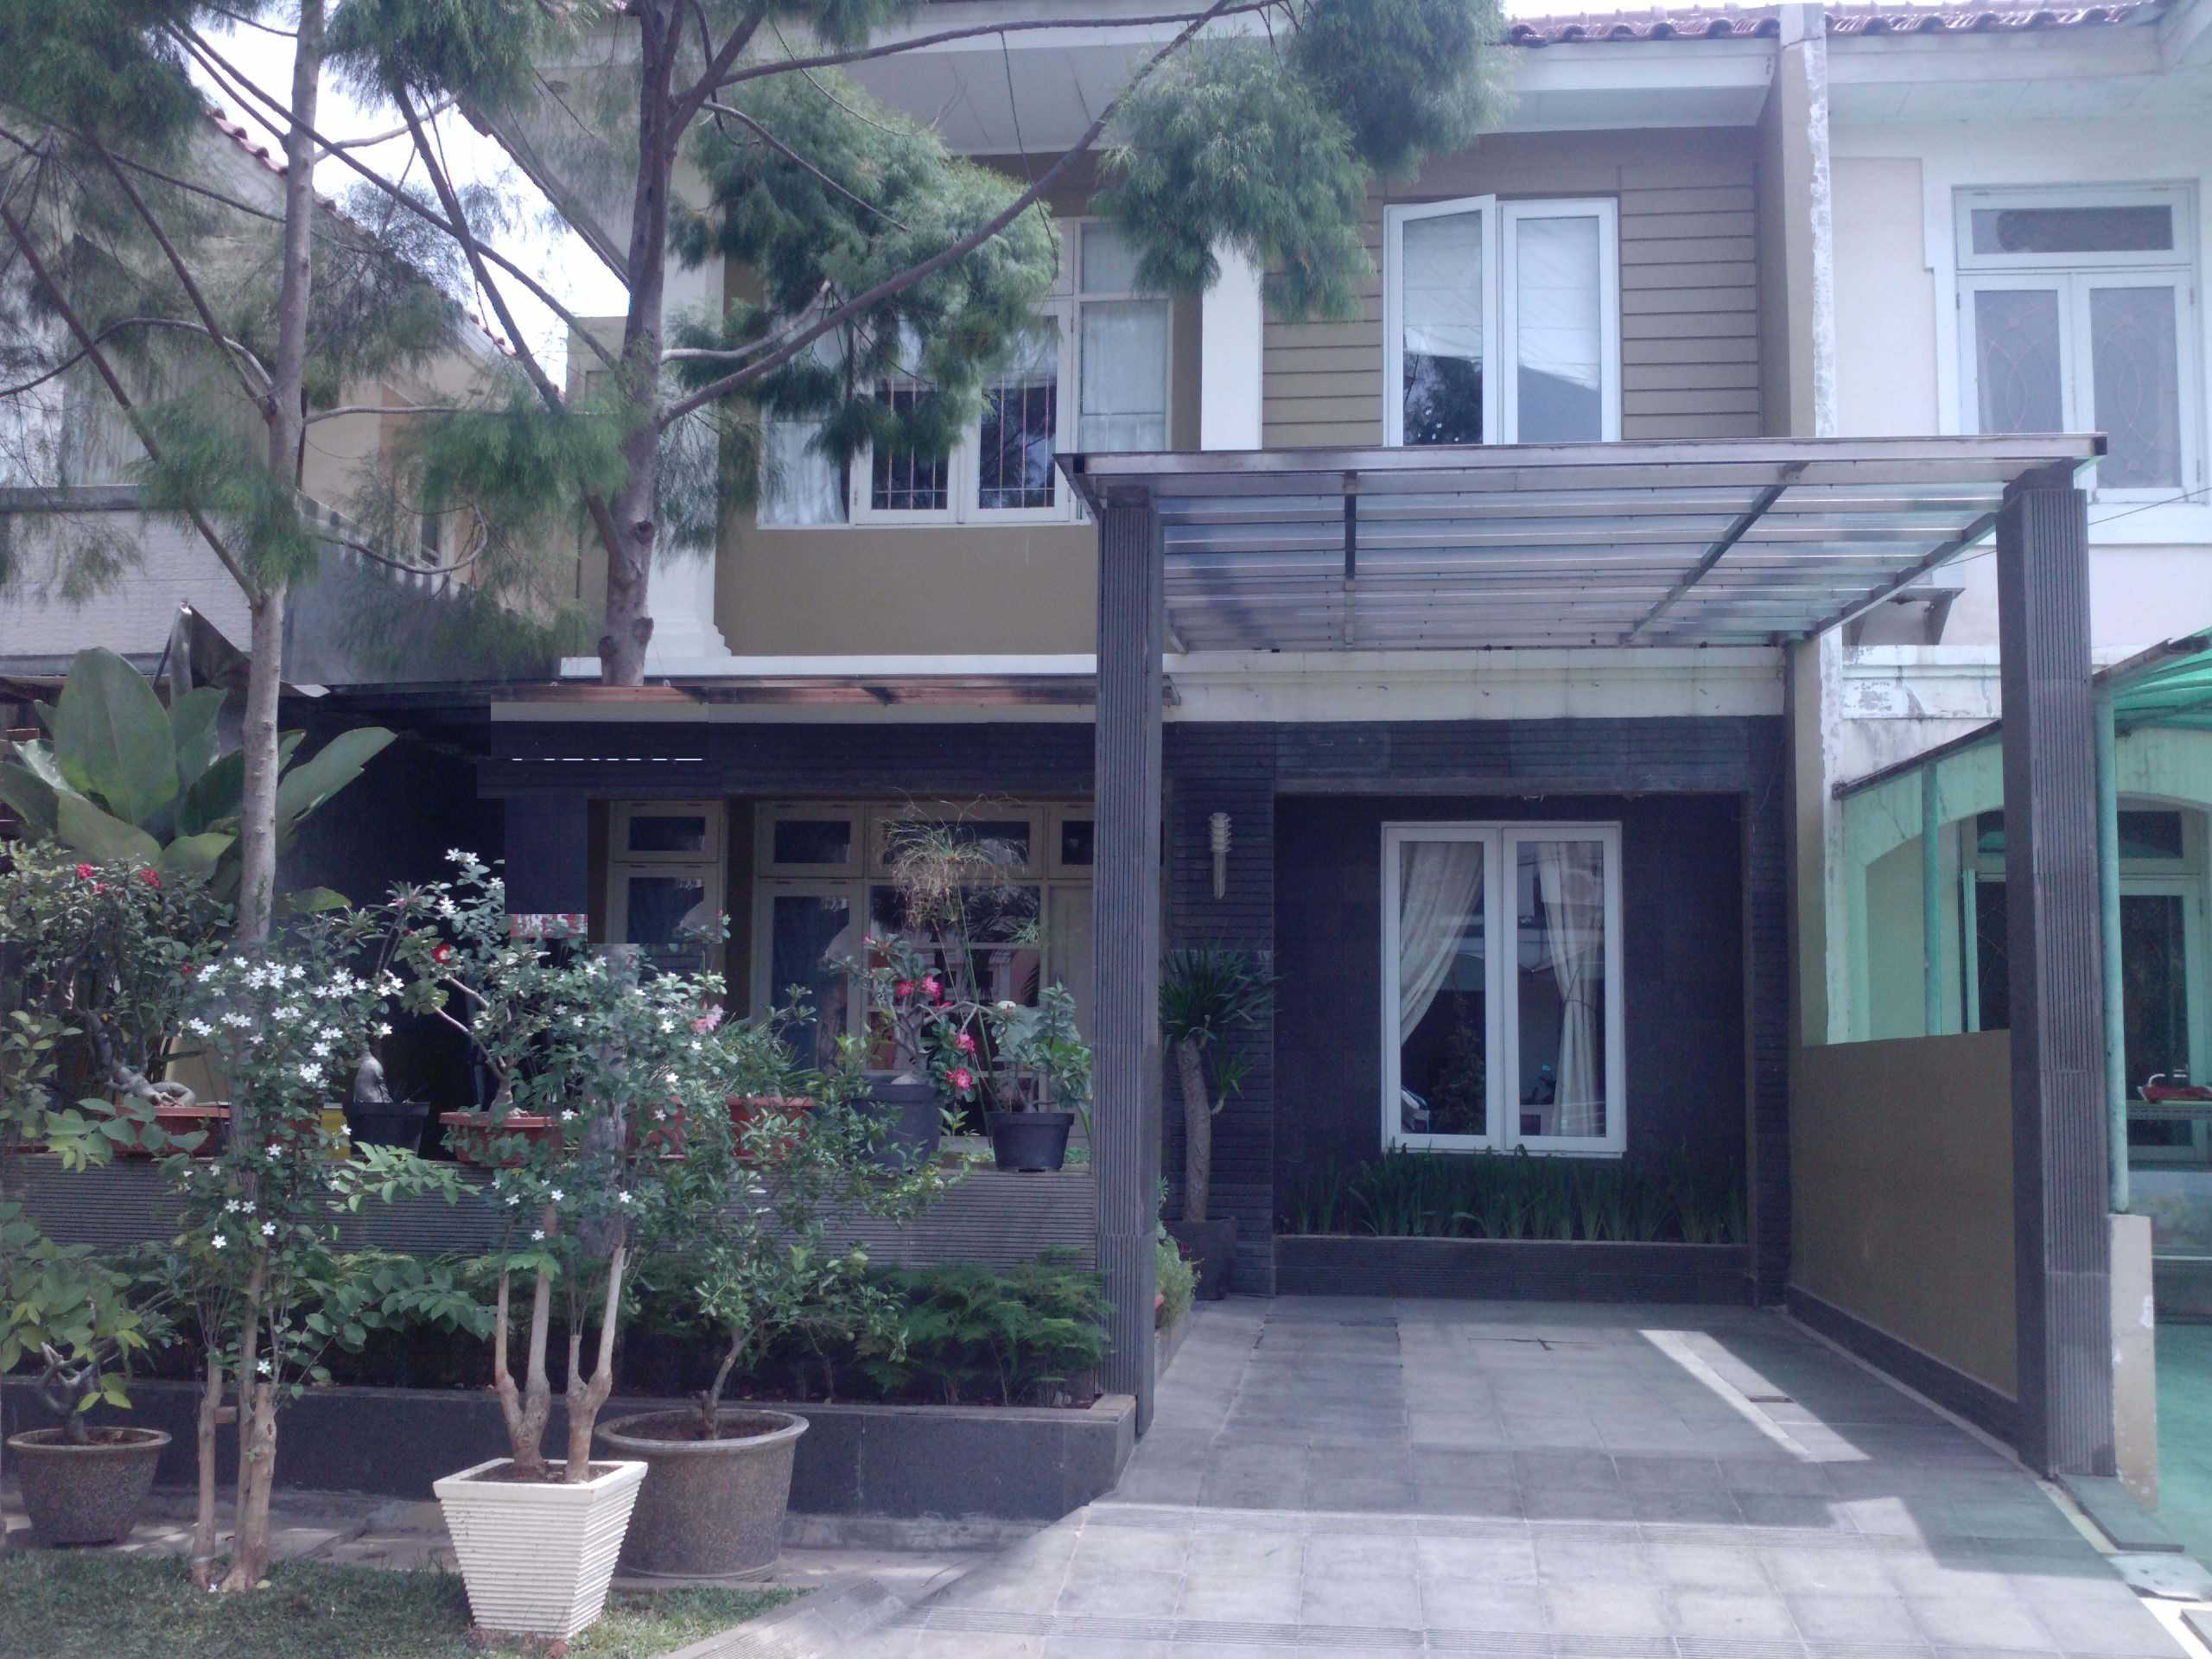 Download Rumah taman palem « Century 21 Mediterania's Blog